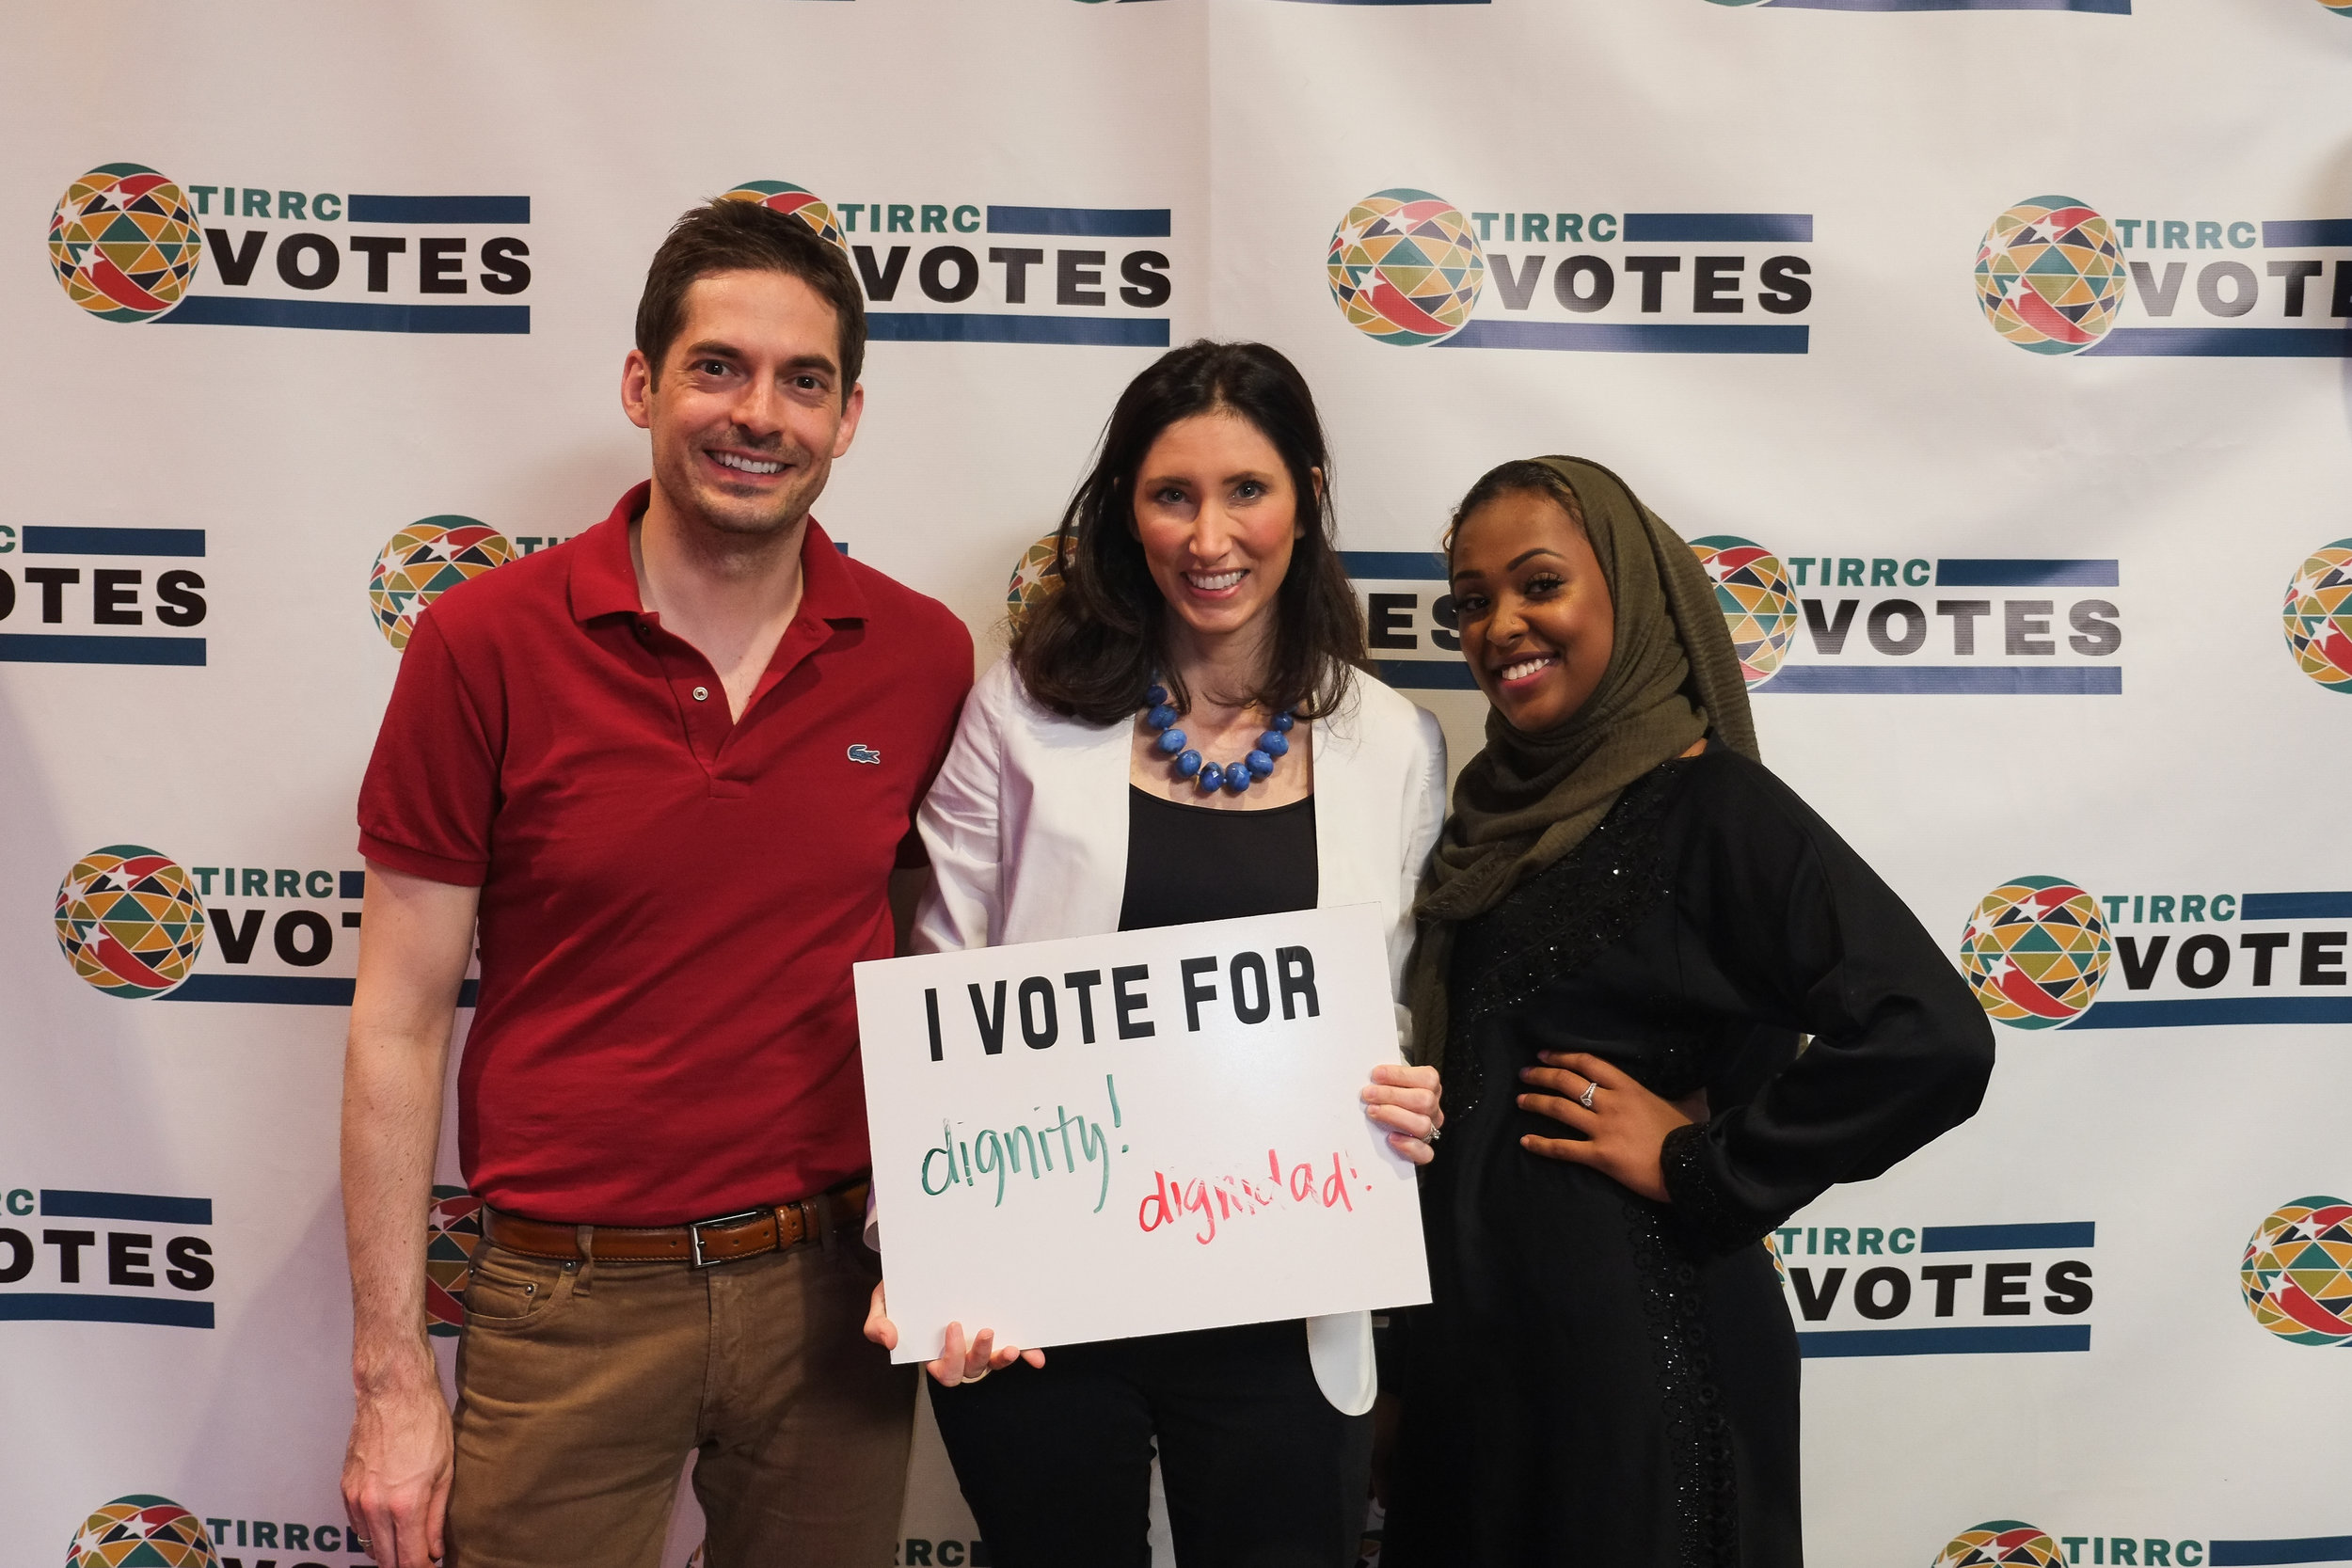 TIRRCVotes-PhotoBooth-22.jpg